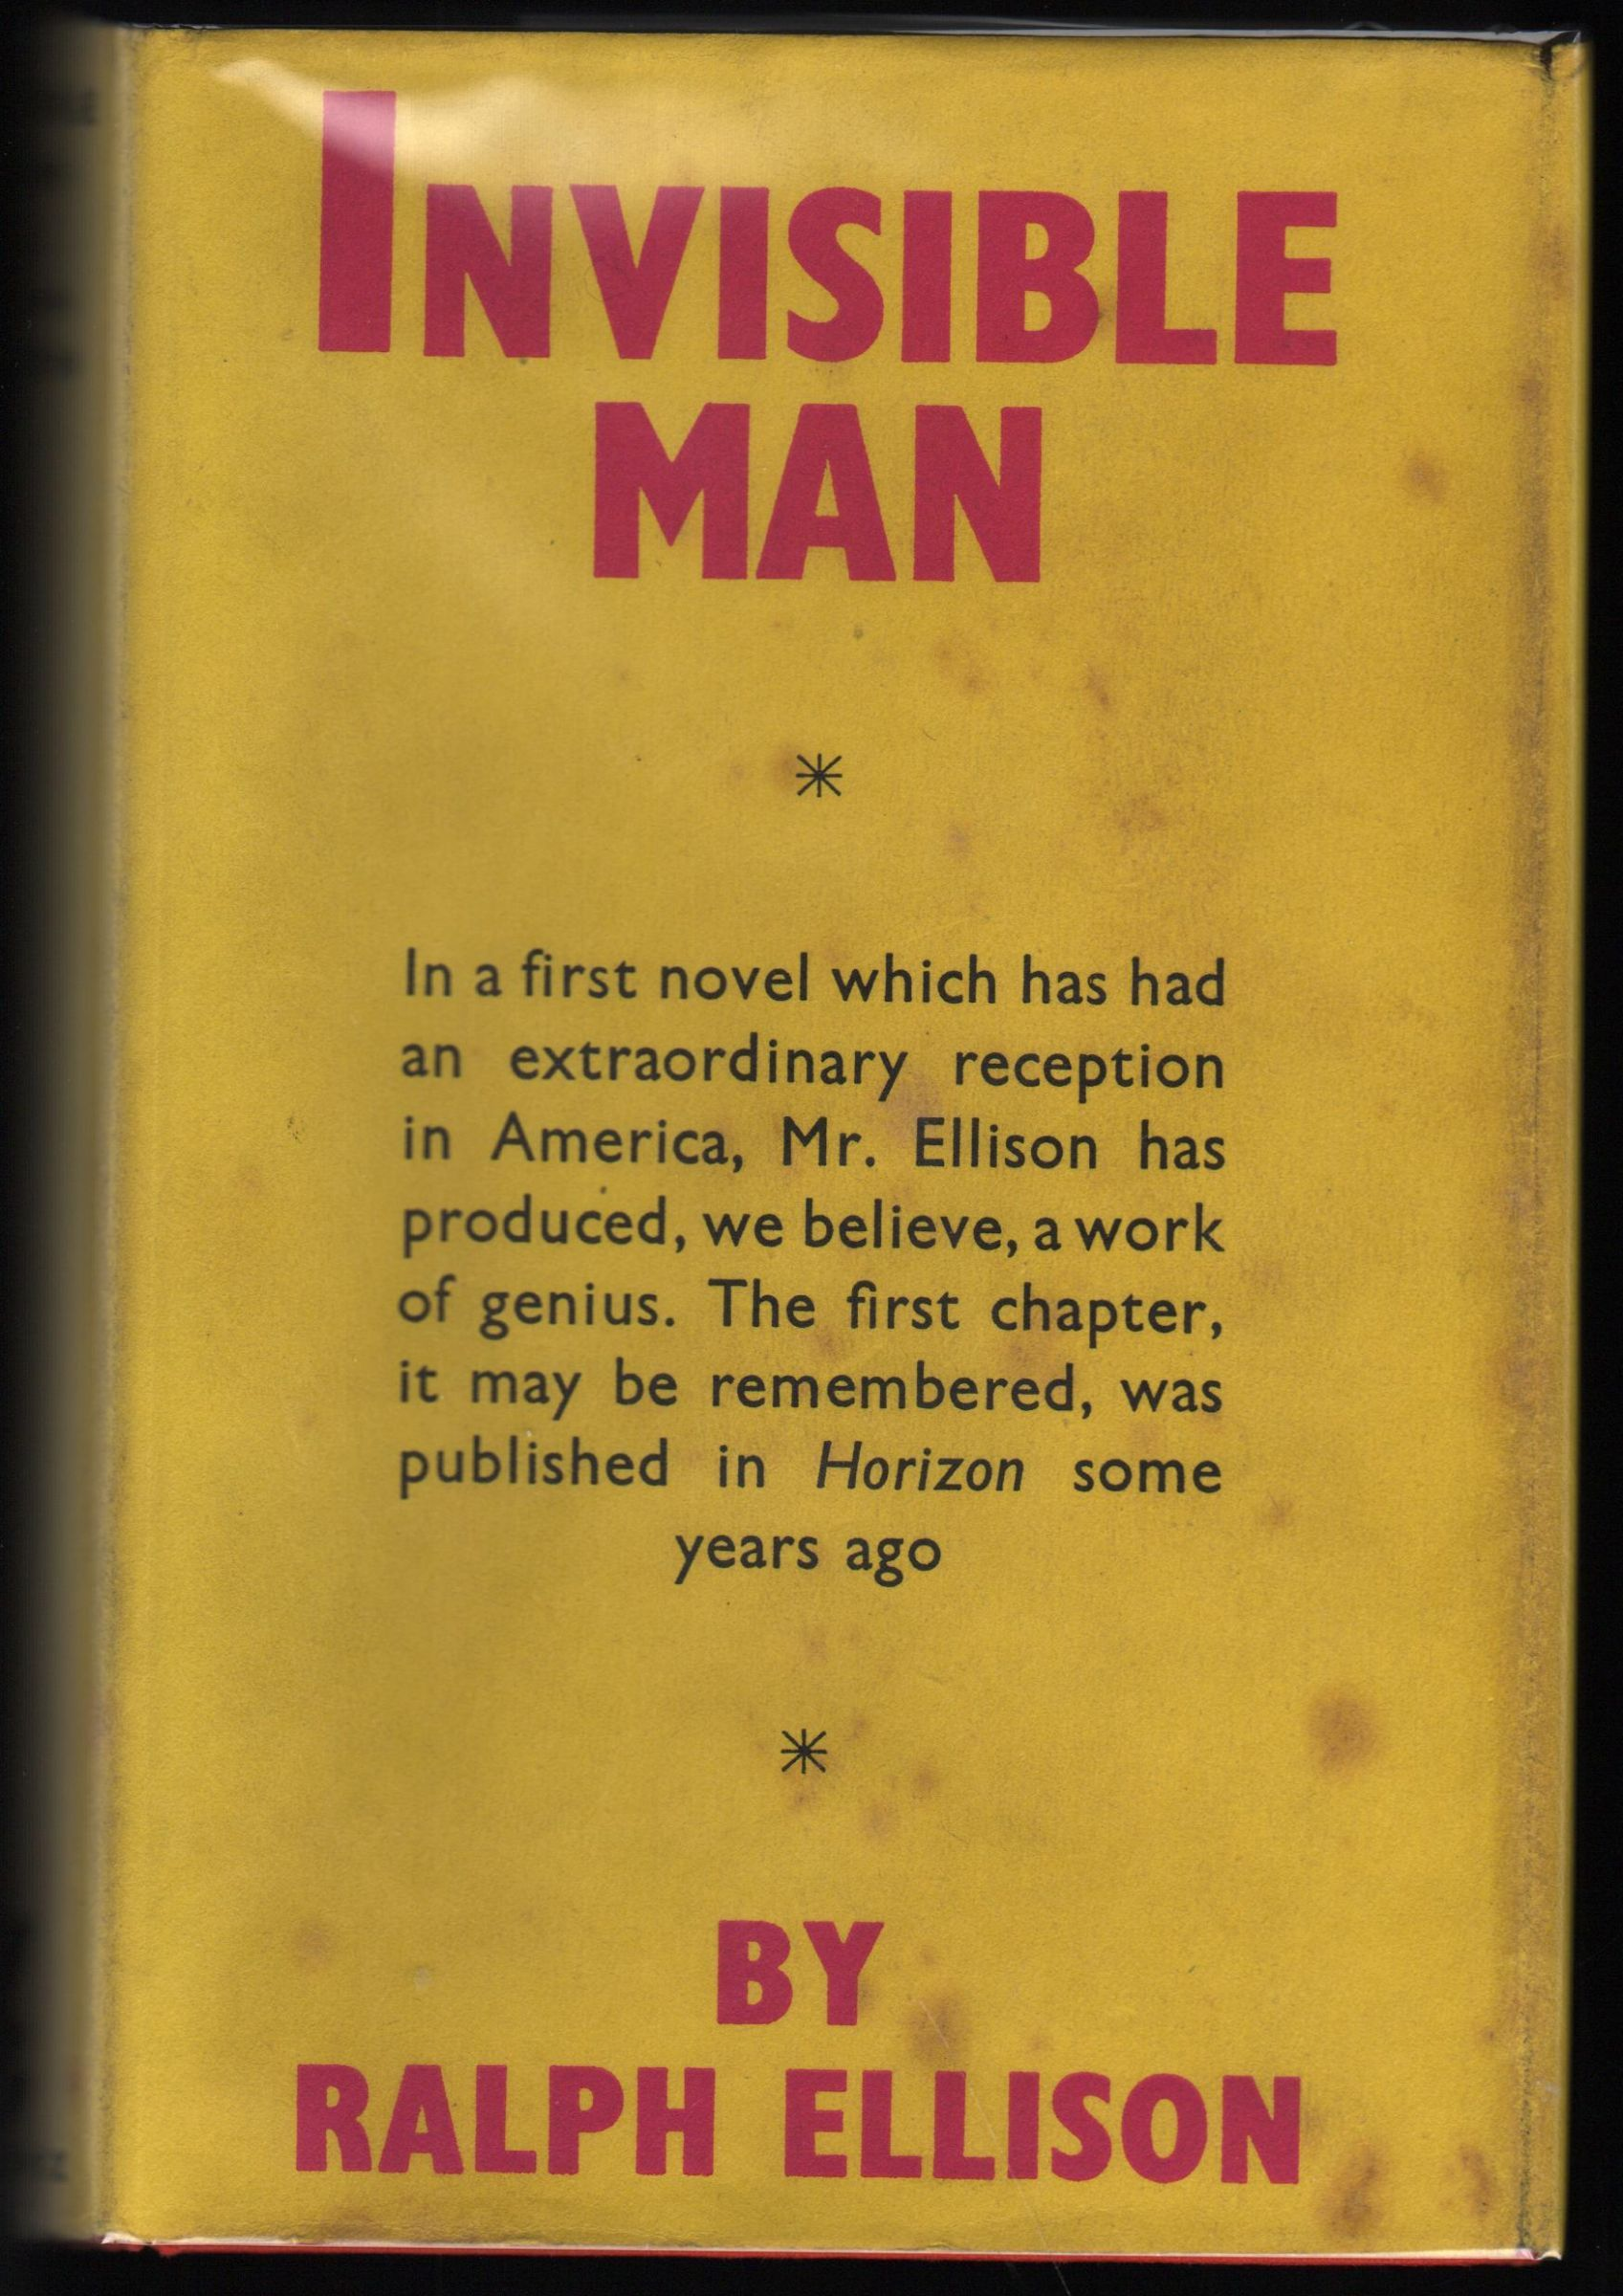 the use of violence in invisible man a novel by ralph ellison Abstract abstract: in 1952, ralph ellison published invisible man to acclaim, though the novel's subterranean ending has inspired critical debate.